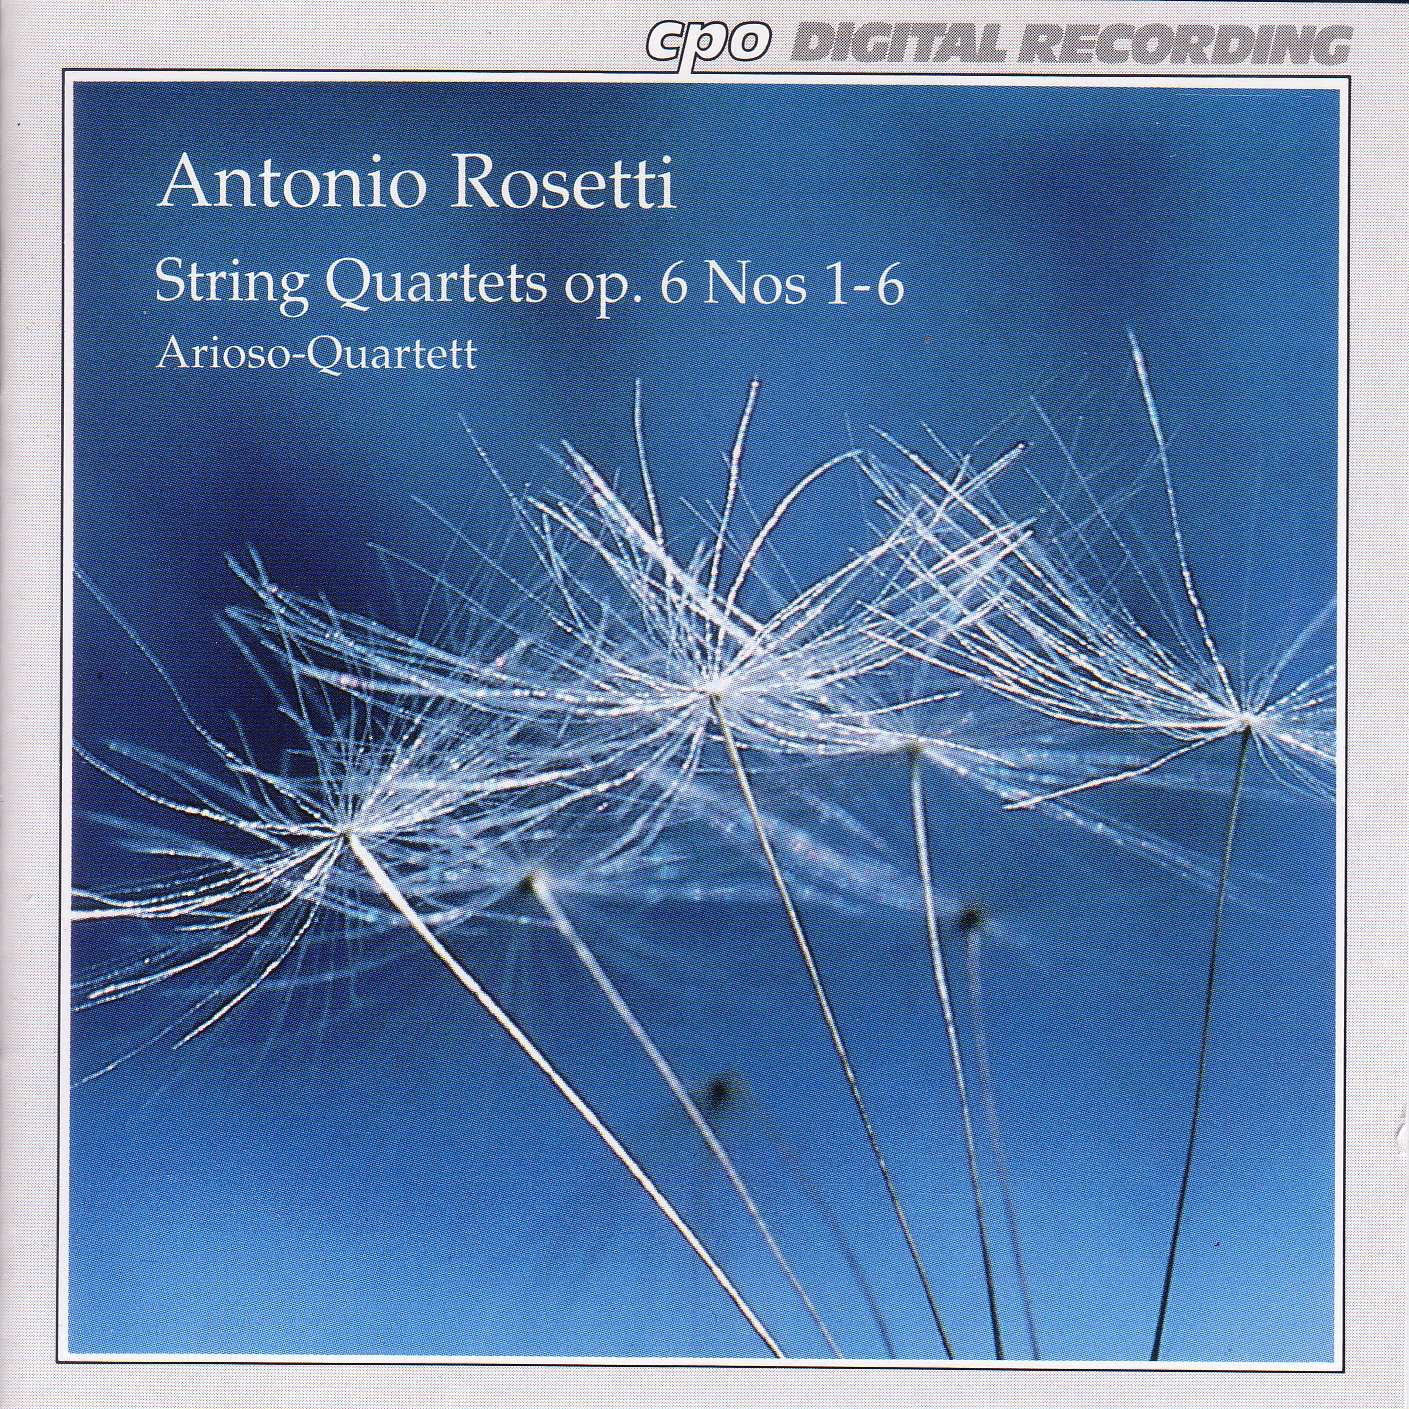 String Quartet In C Minor, Op. 6, No. 4: I. Adagio